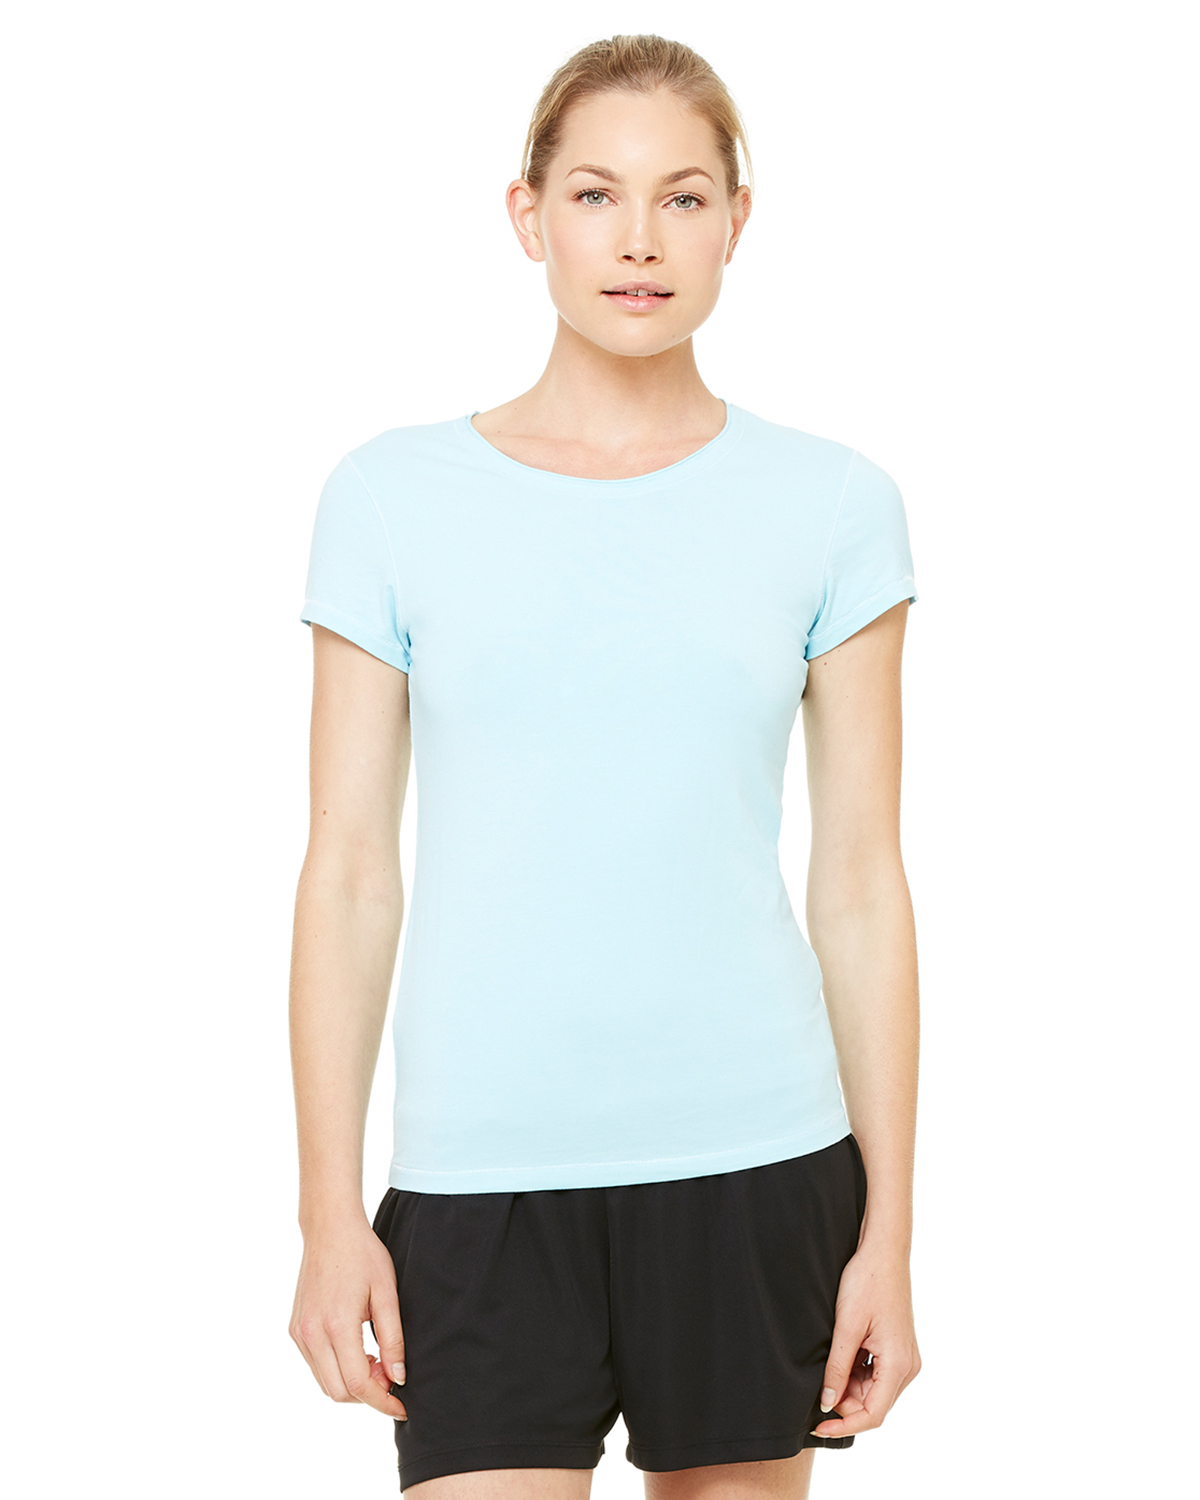 alo W1004 Ladies' Short Sleeve Bamboo T-Shirt